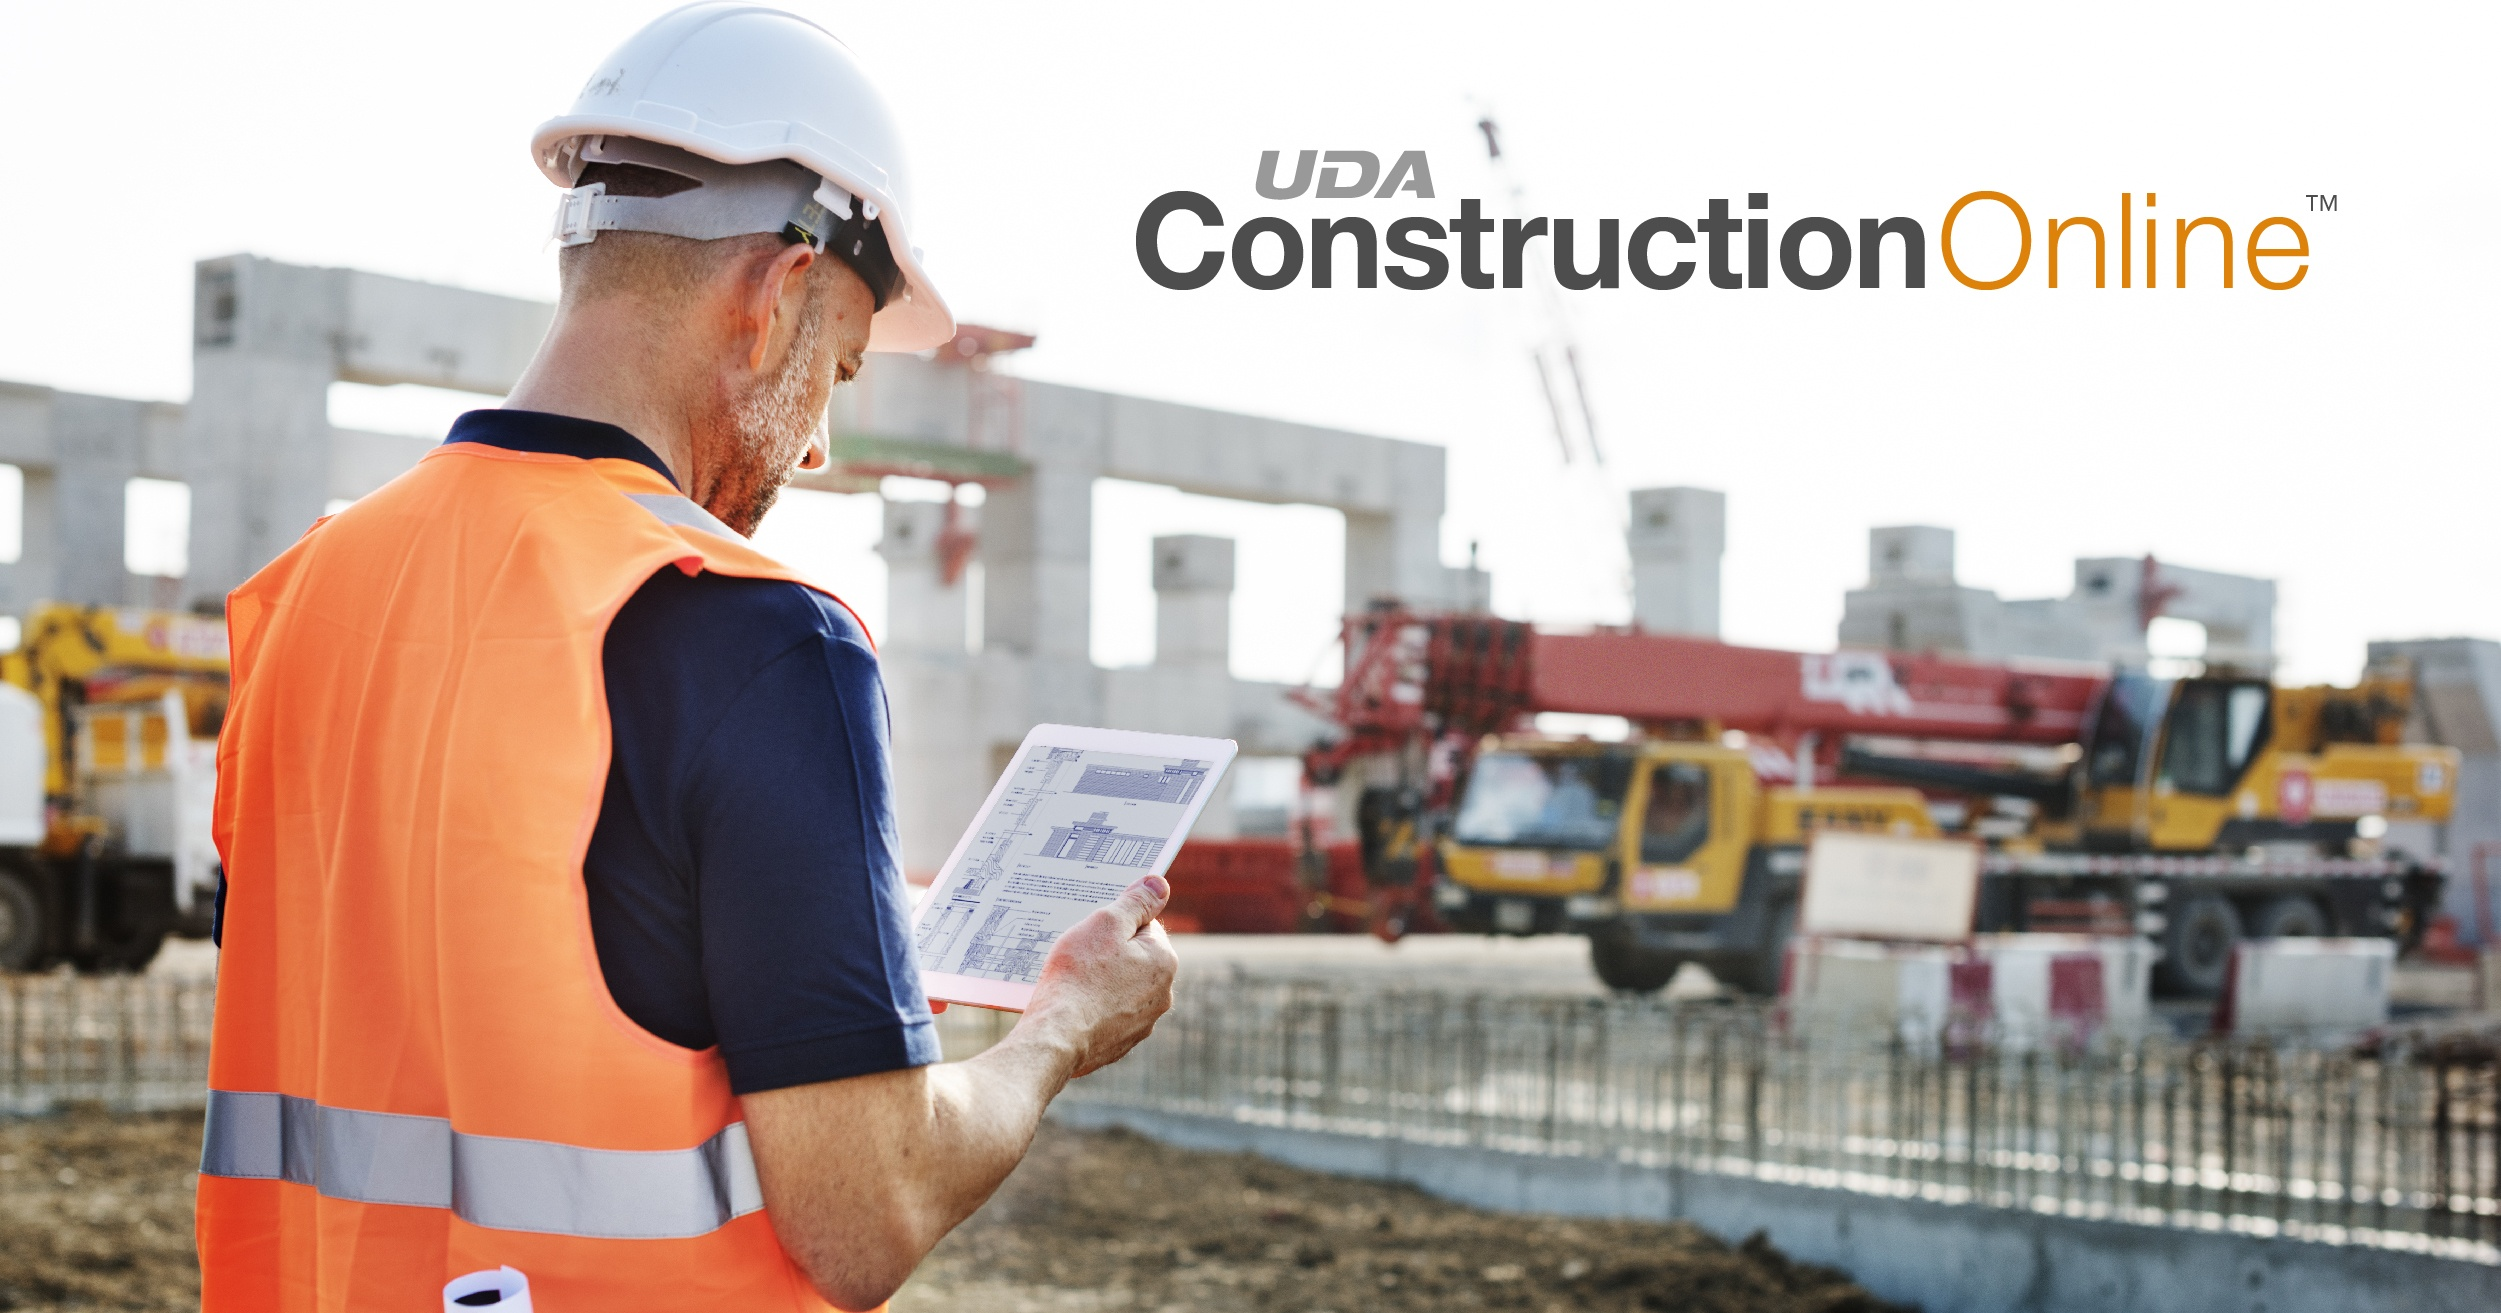 4 Ways to Impress Your Boss by Using ConstructionOnline From The Field